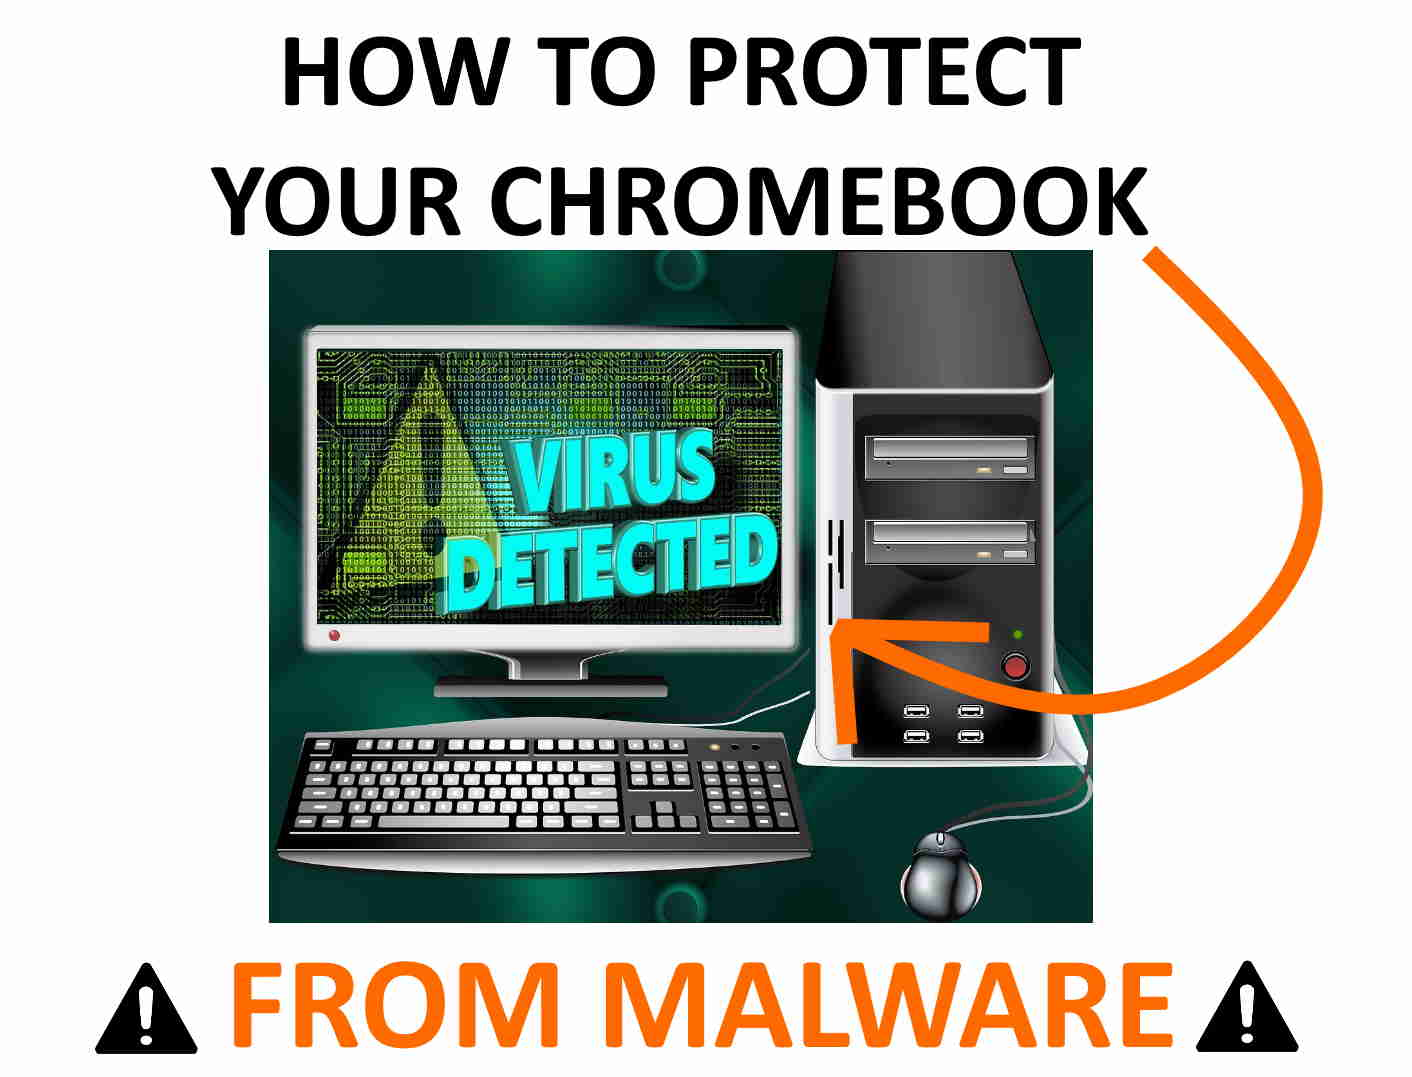 Scan, remove, protect Chromebook from malware.